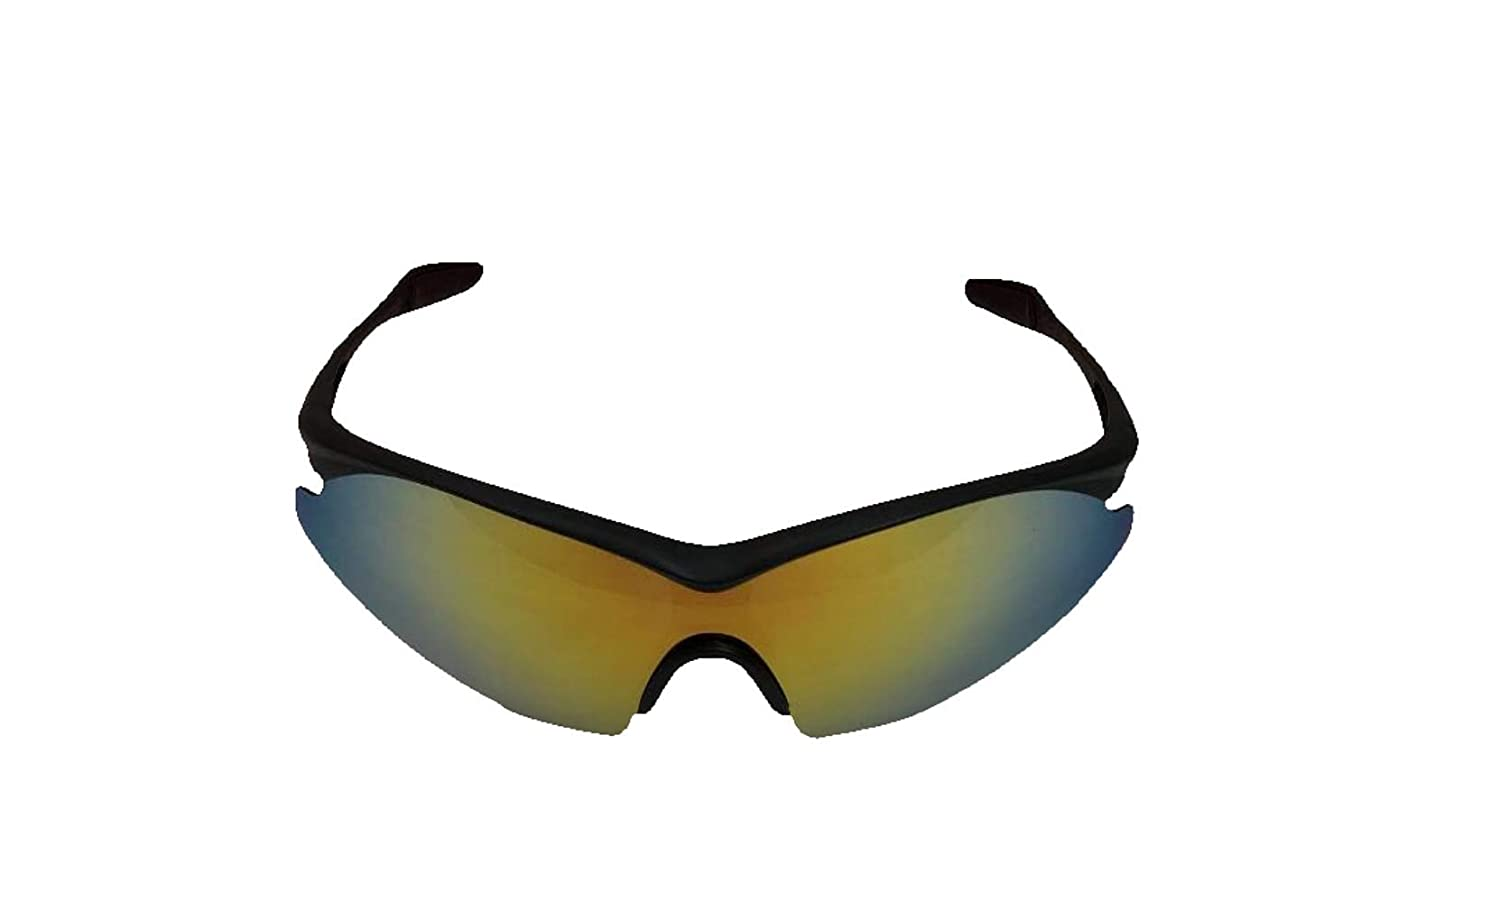 2dacea0e4a Amazon.com  Ne Bell + Howell Tac Glasses Military Style Sunglasses Glare  Enhance Colors ASTV  Clothing